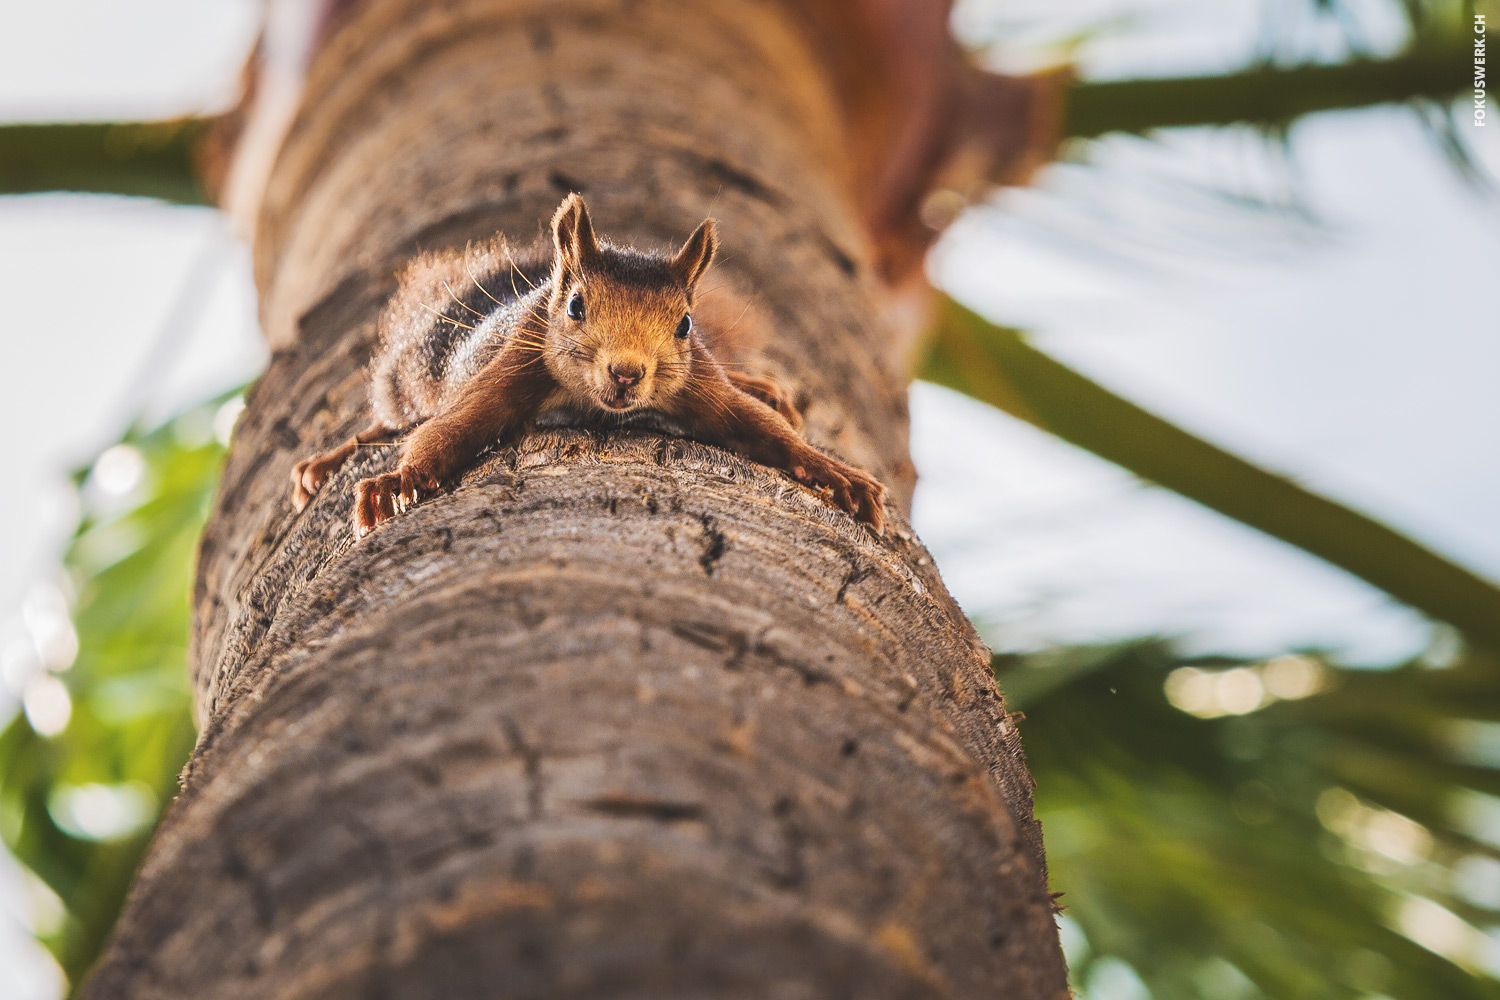 Squirrel hanging upside down on palm tree